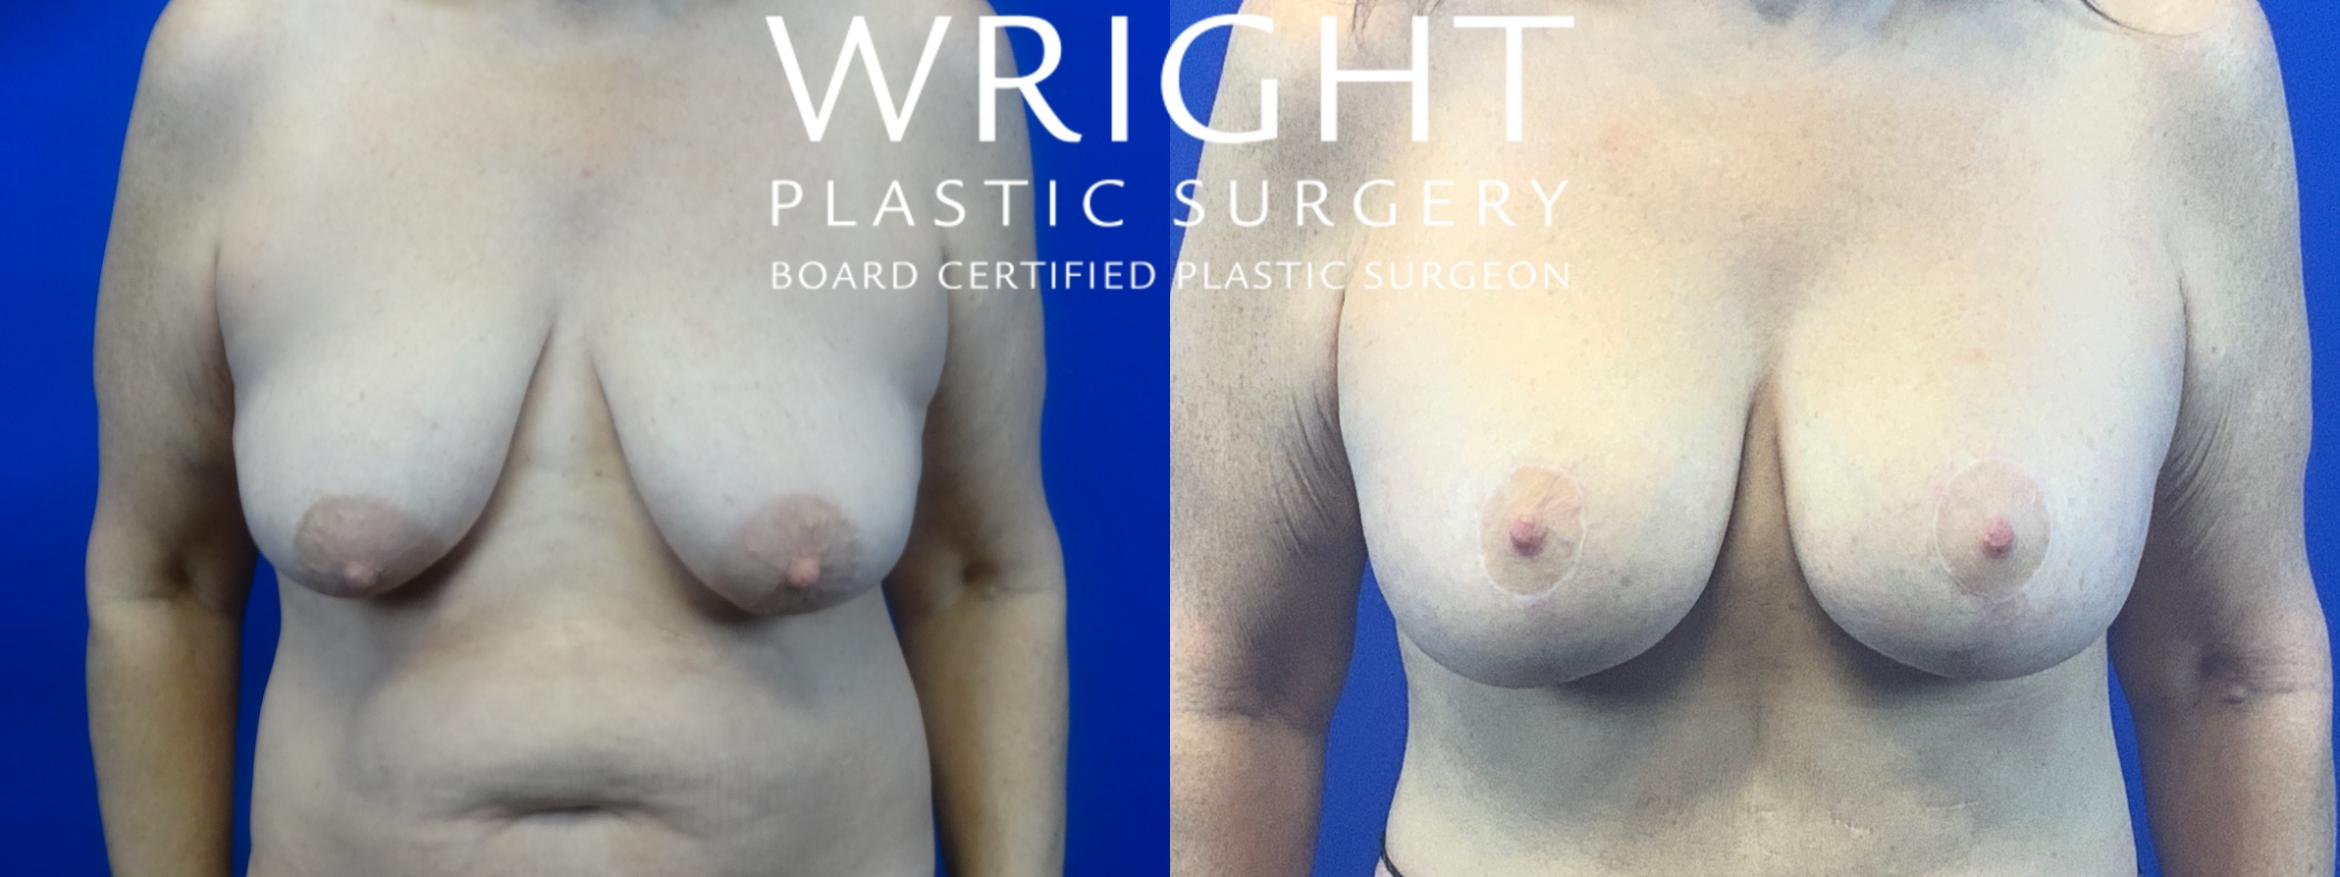 Breast Lift Case 48 Before & After Front | Little Rock, Arkansas | Dr. Wright Plastic Surgery